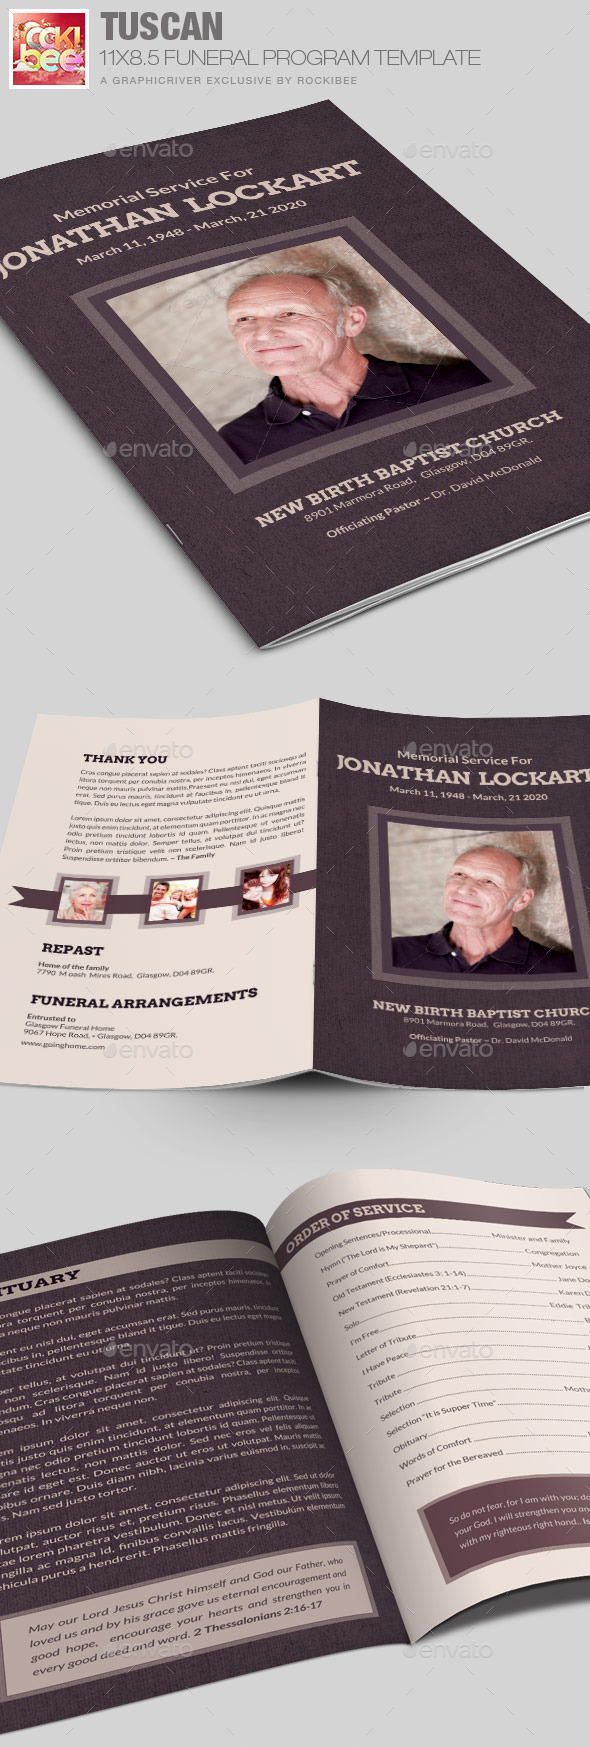 GraphicRiver Tuscan Funeral Program Template 10284891